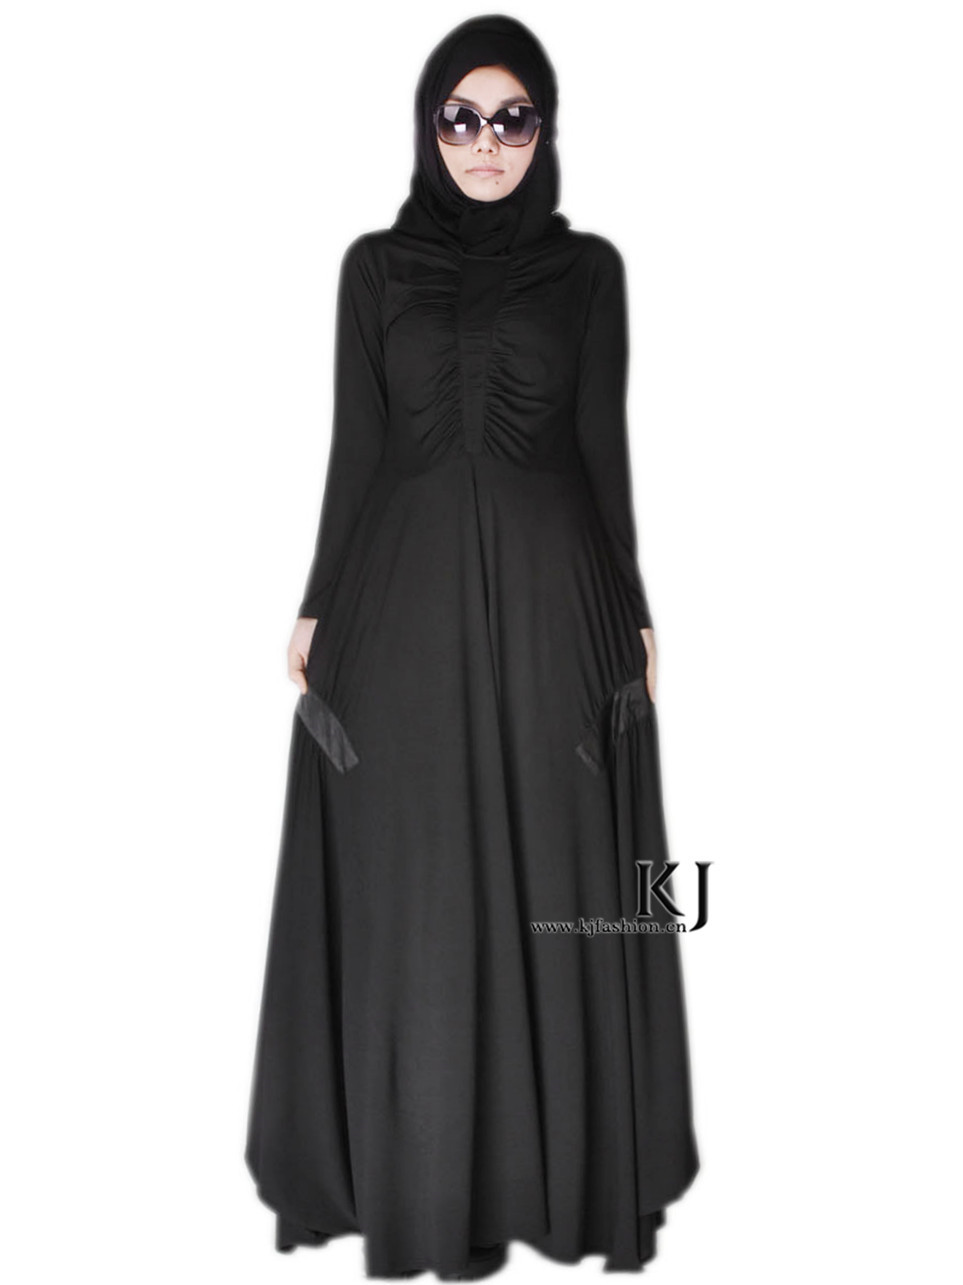 Perfect Dress For Women Islamic Dresses Dubai Islamic Clothing Muslim Dress